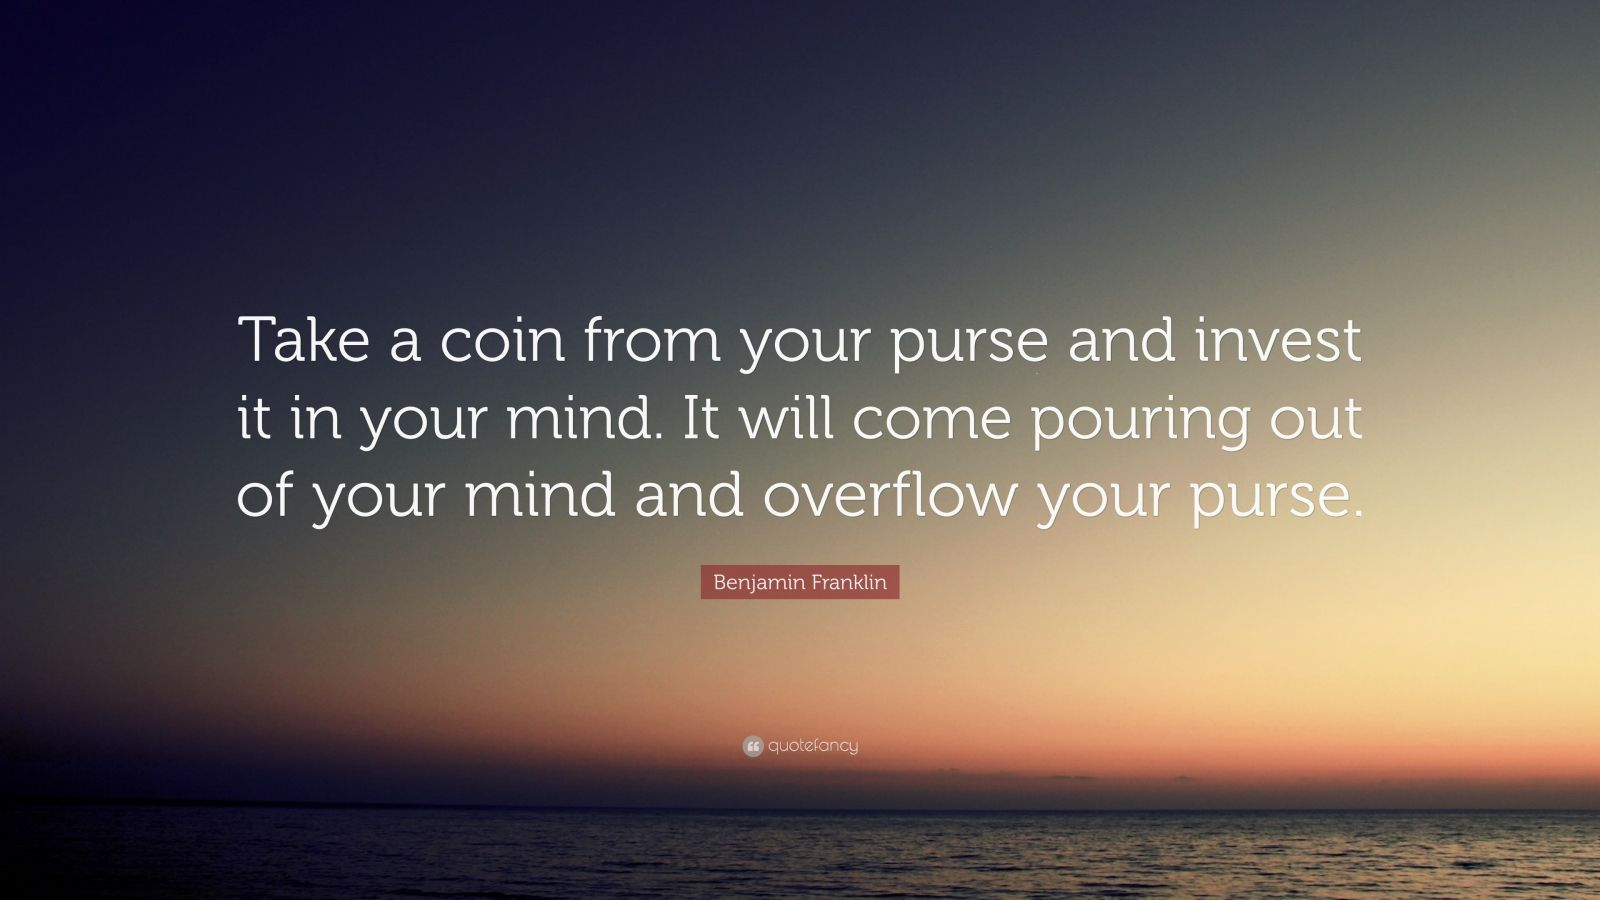 """Benjamin Franklin Quote: """"Take a coin from your purse and invest it in your mind. It will come pouring out of your mind and overflow your purse."""""""